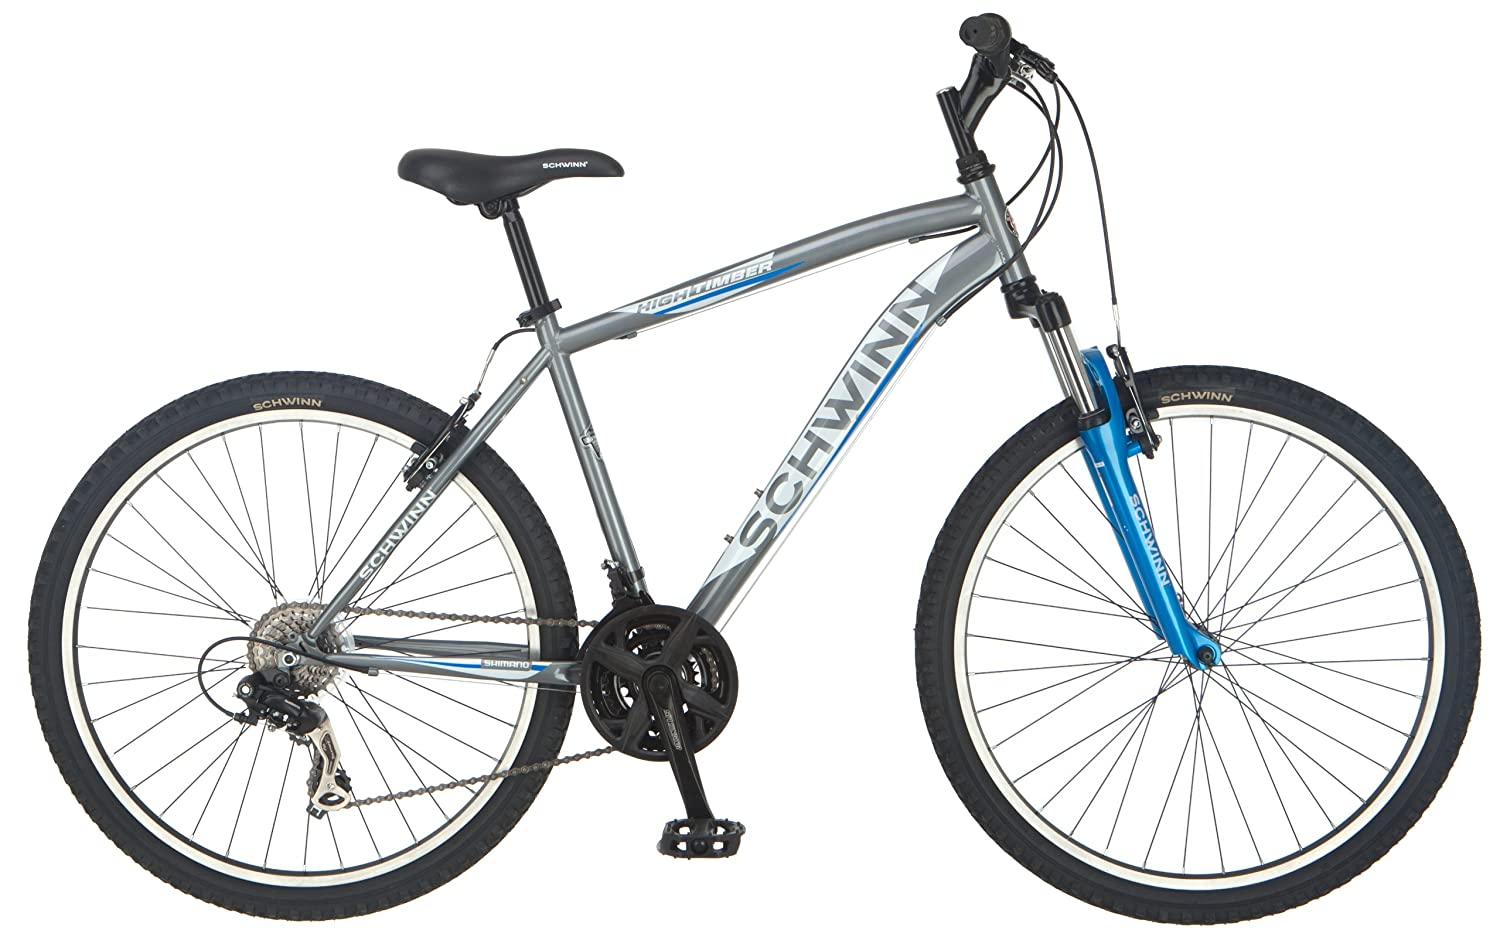 83498f8f528 Schwinn Men s High Timber Mountain Bike review 1